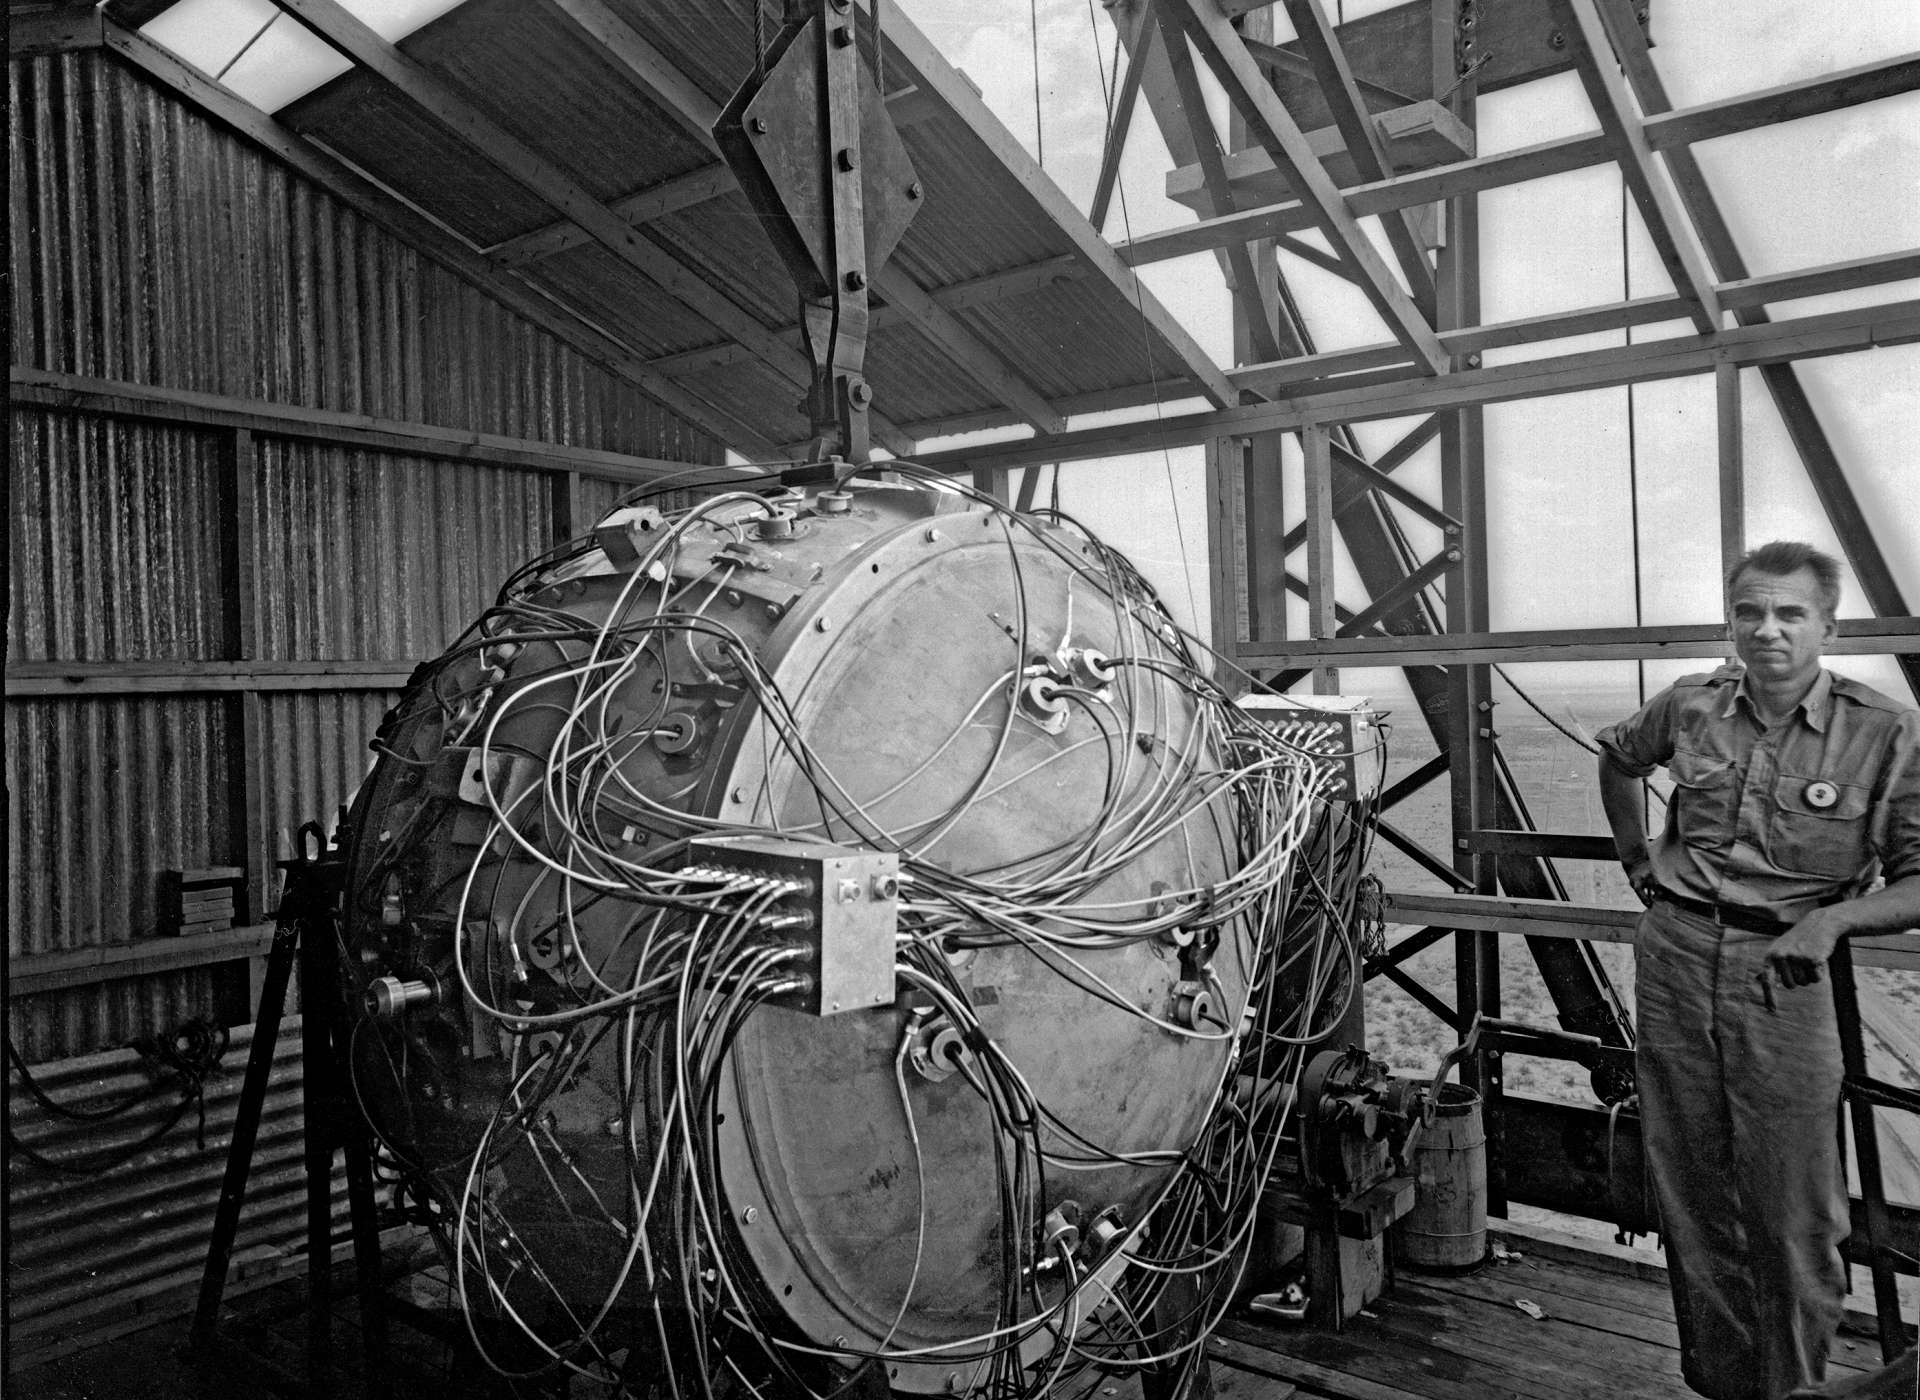 Gadget before Trinity Test, 1945.